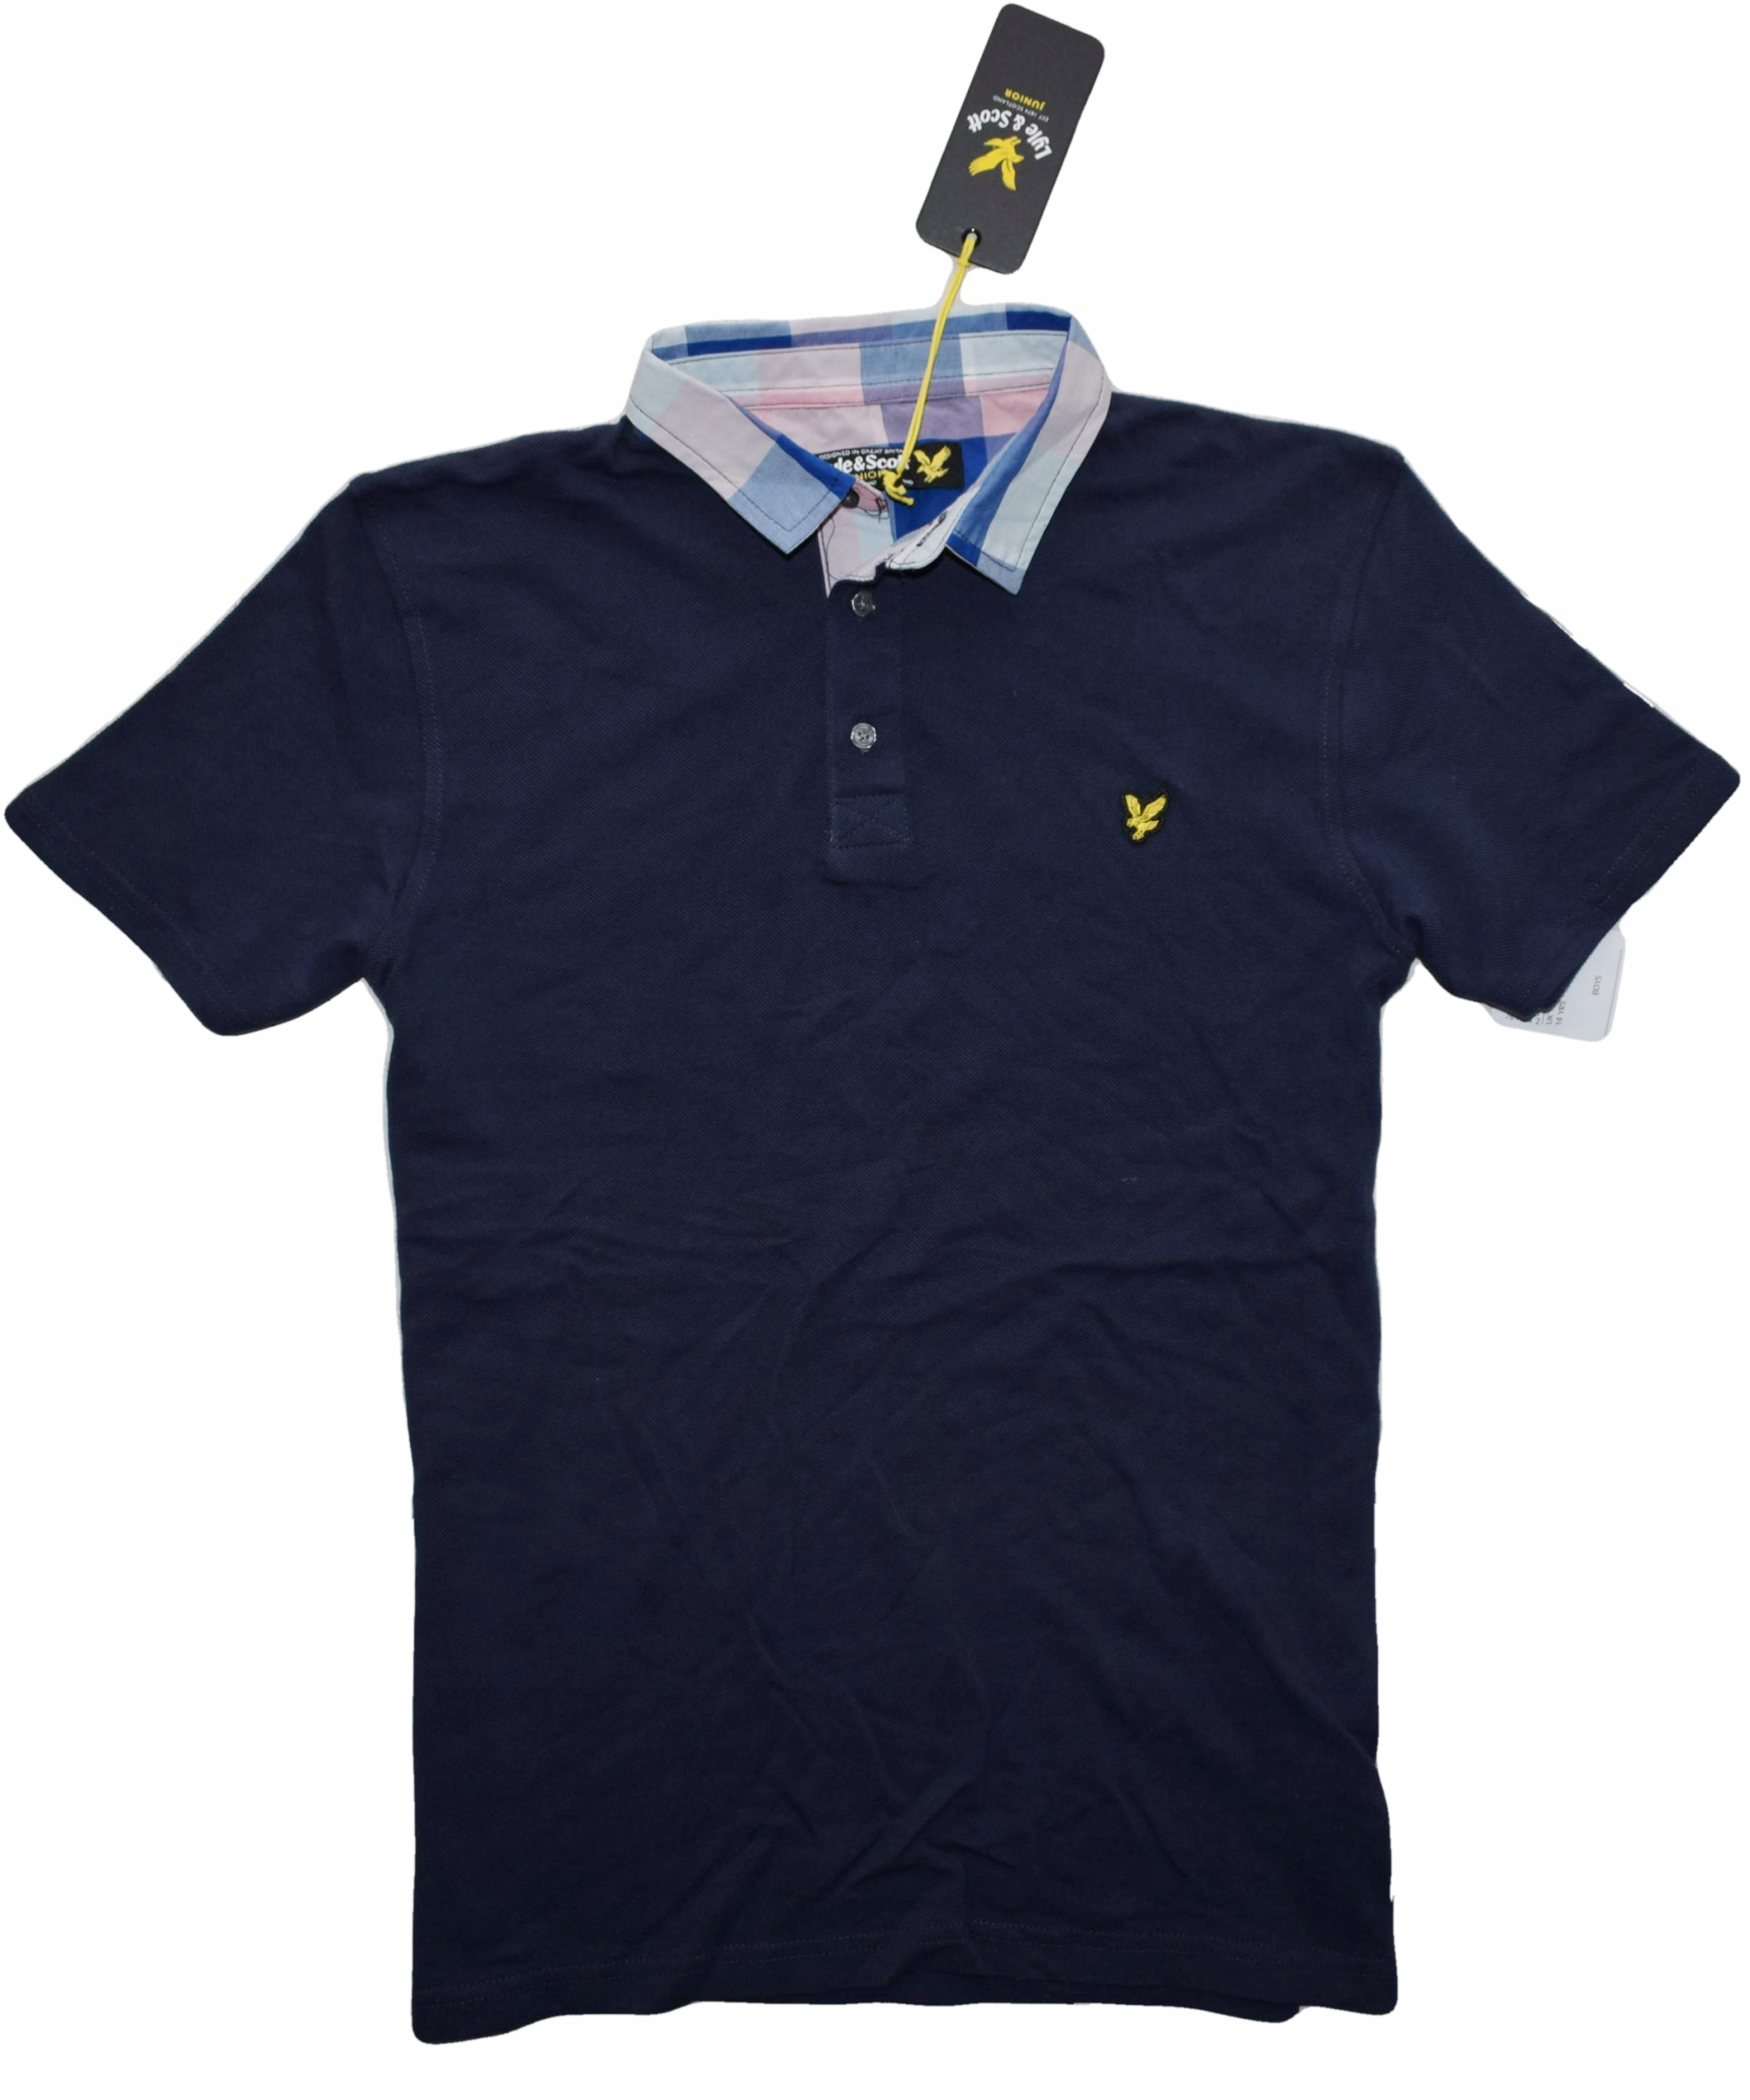 Lyle Scott S NOVOU t-shirt Polo VINTAGE